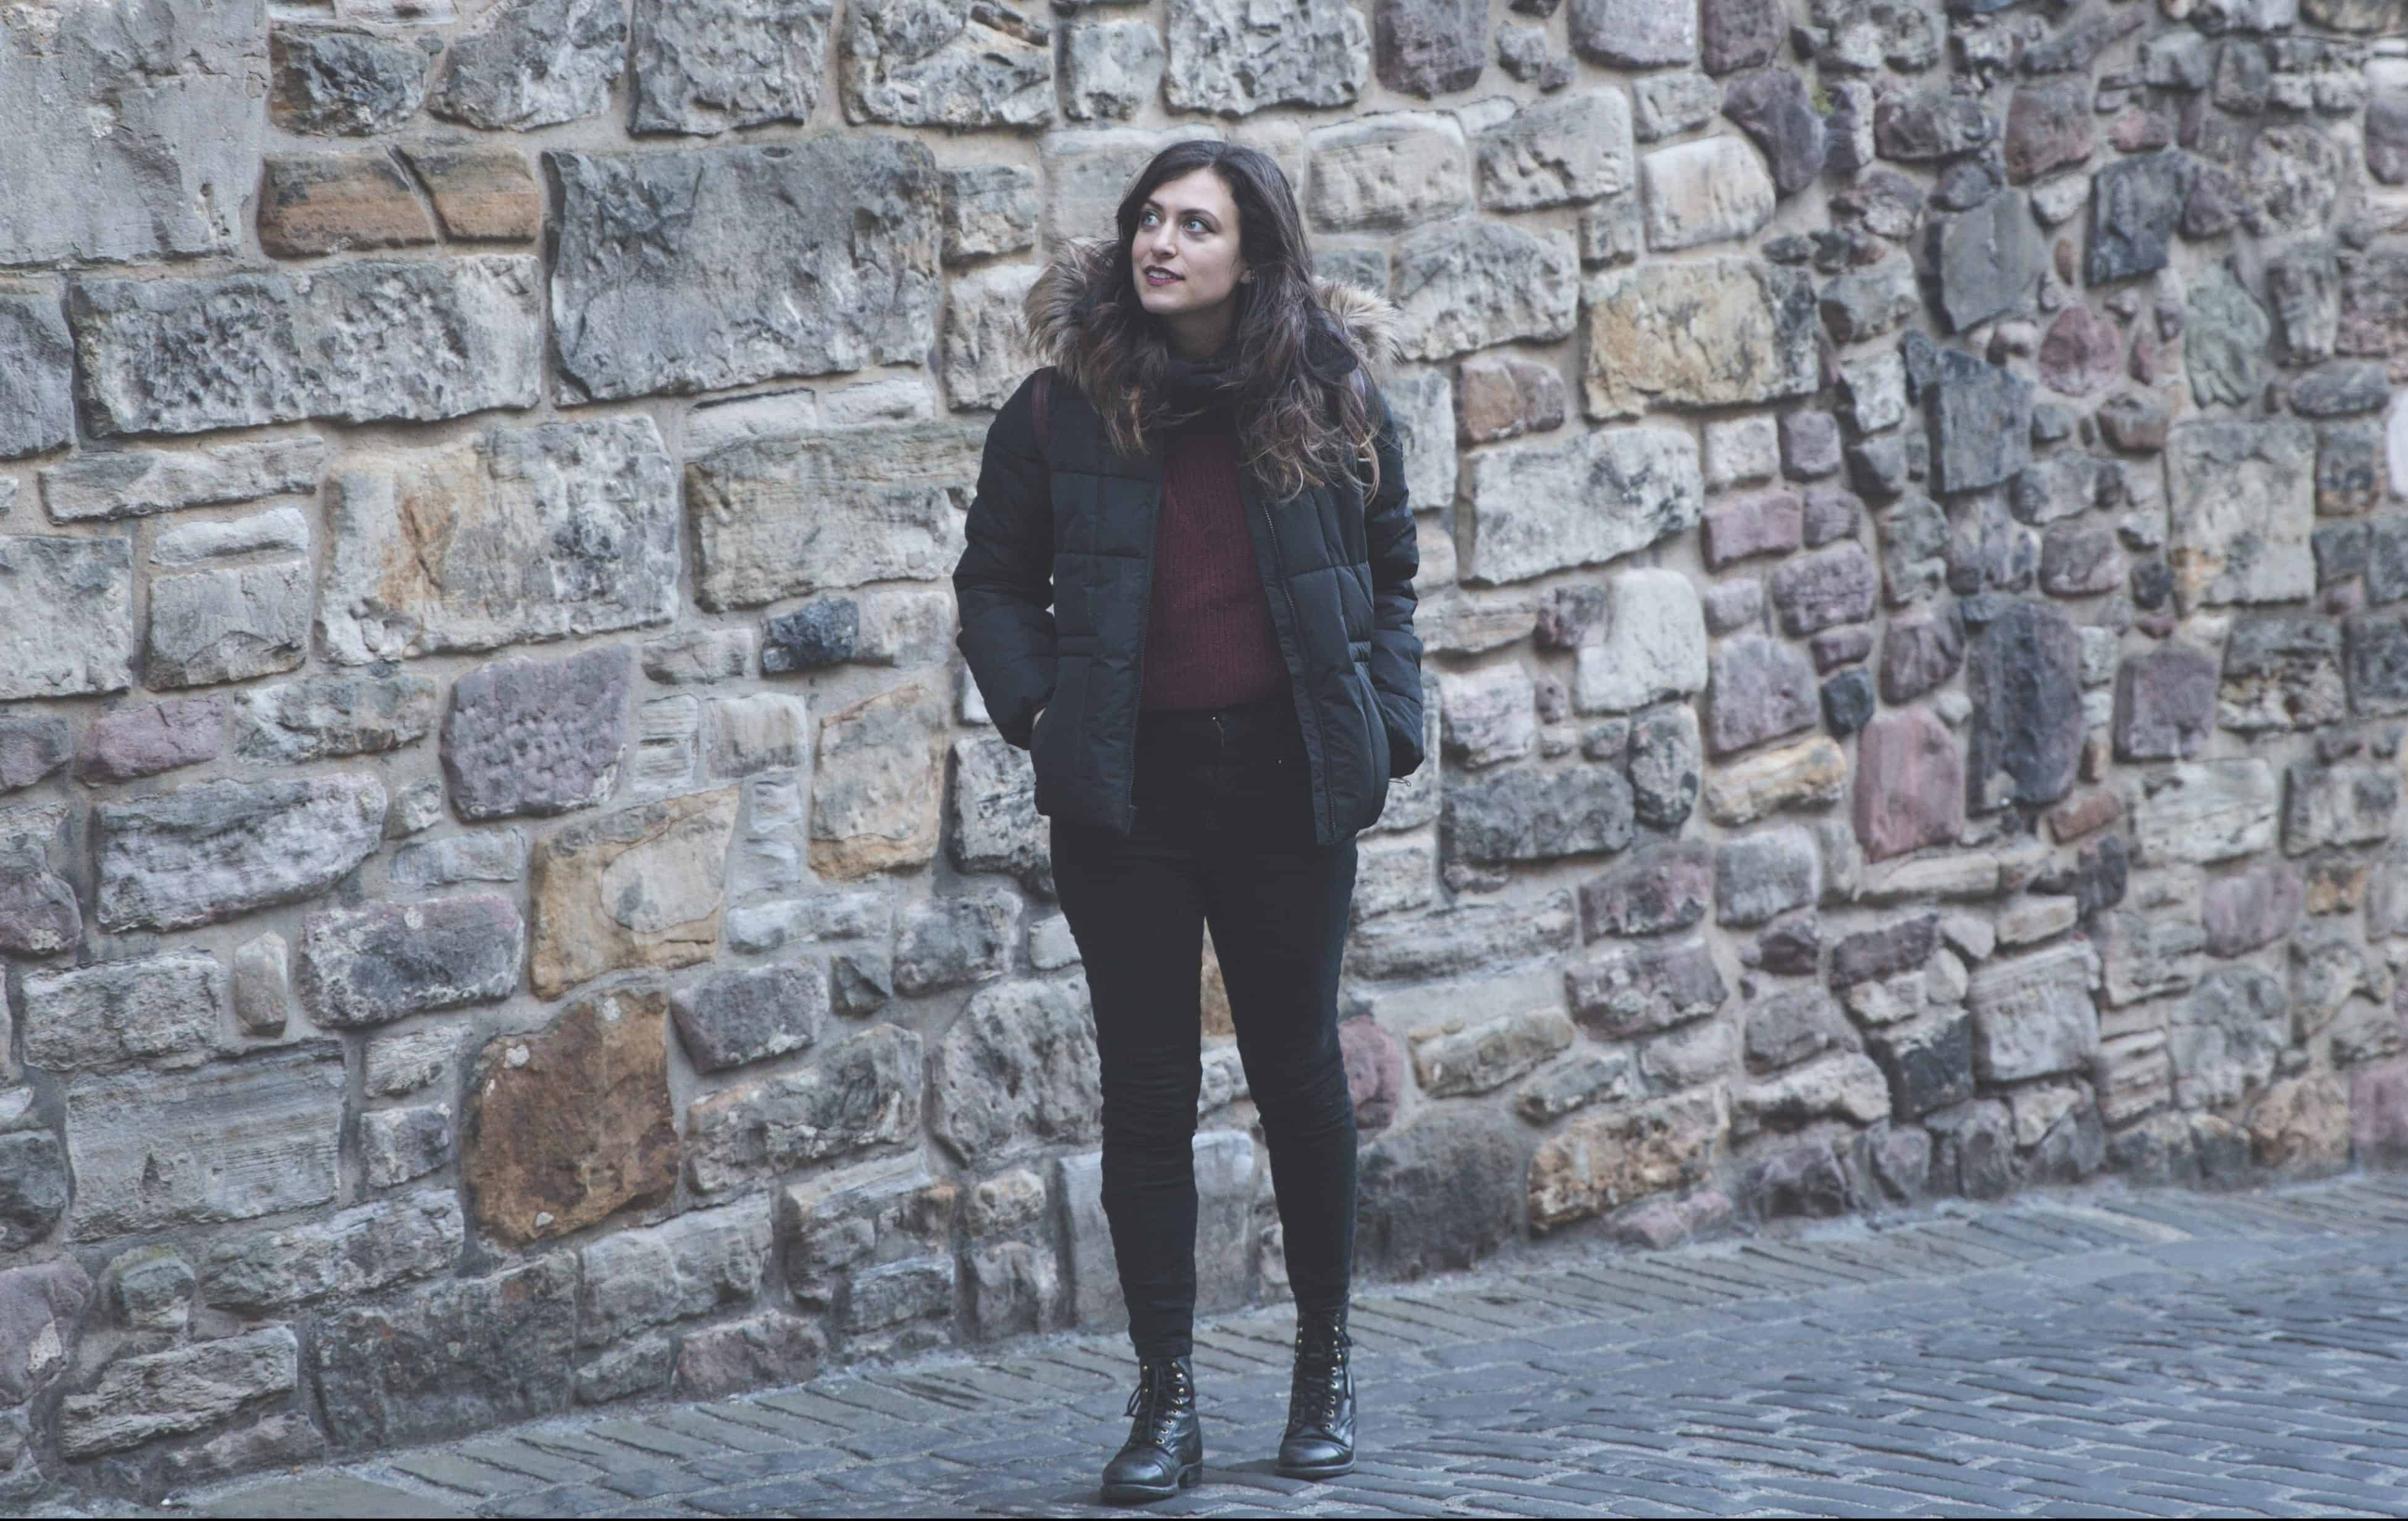 Kelsey walking through Edinburgh wearing items she packed for 3 months in Europe during winter!